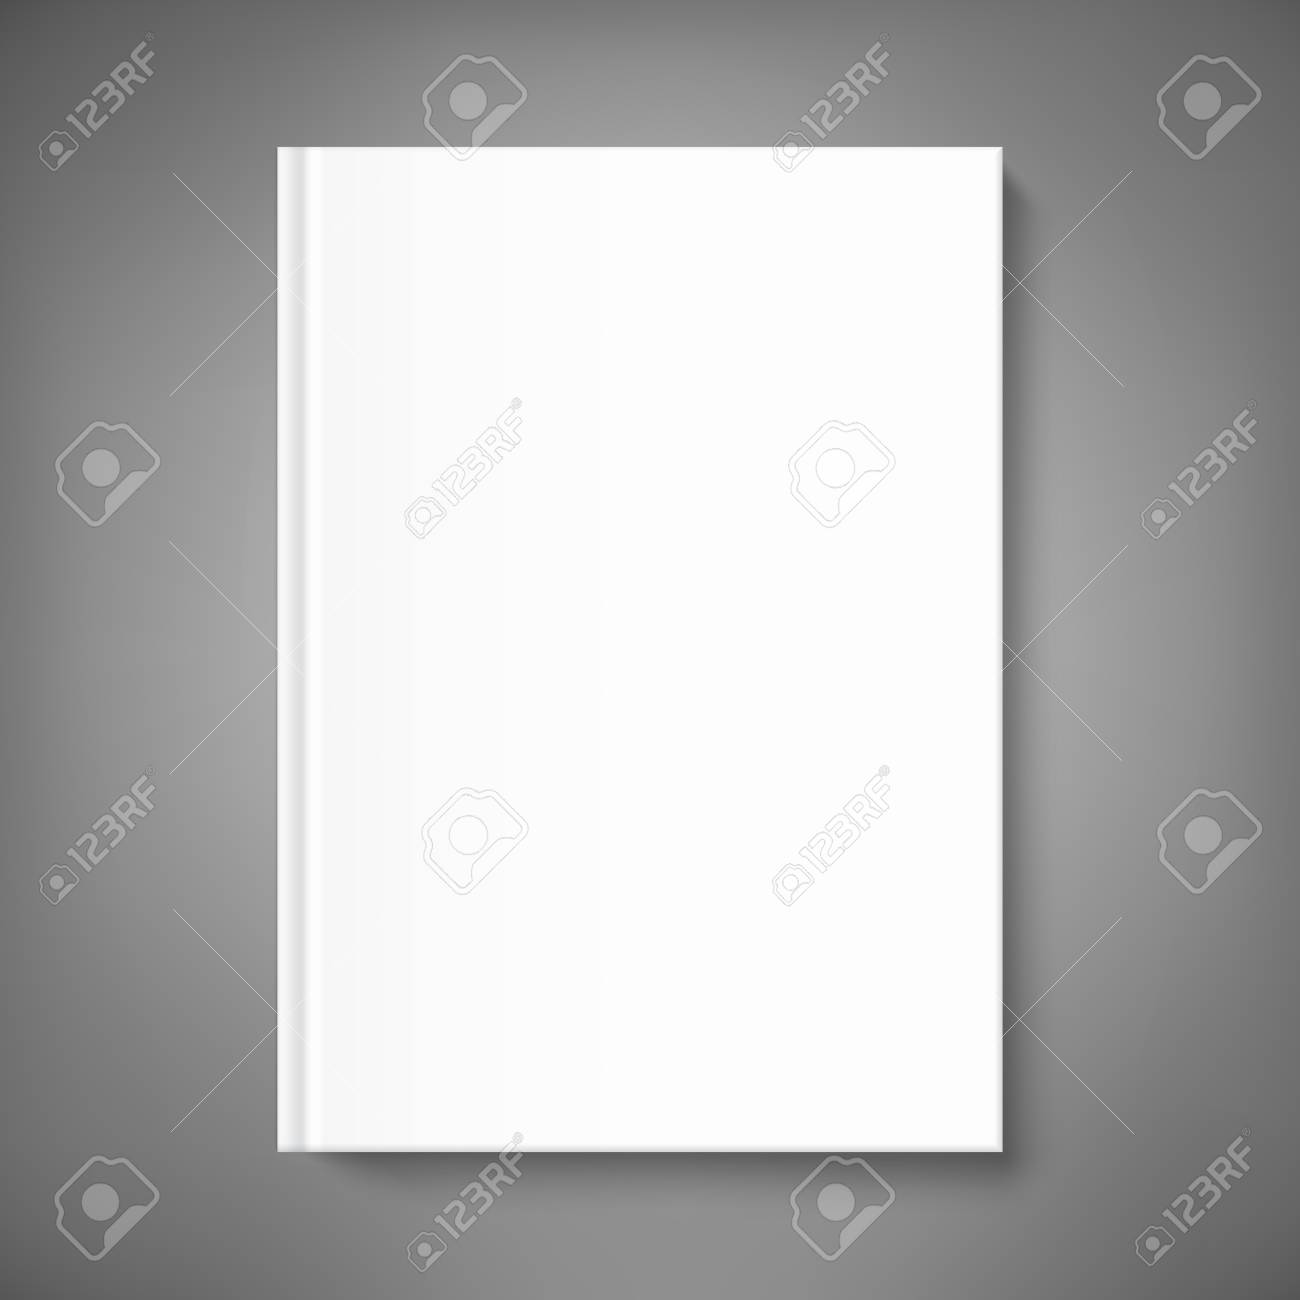 Mock up book cover on neutral grey background. Vector template for your design. - 95843006